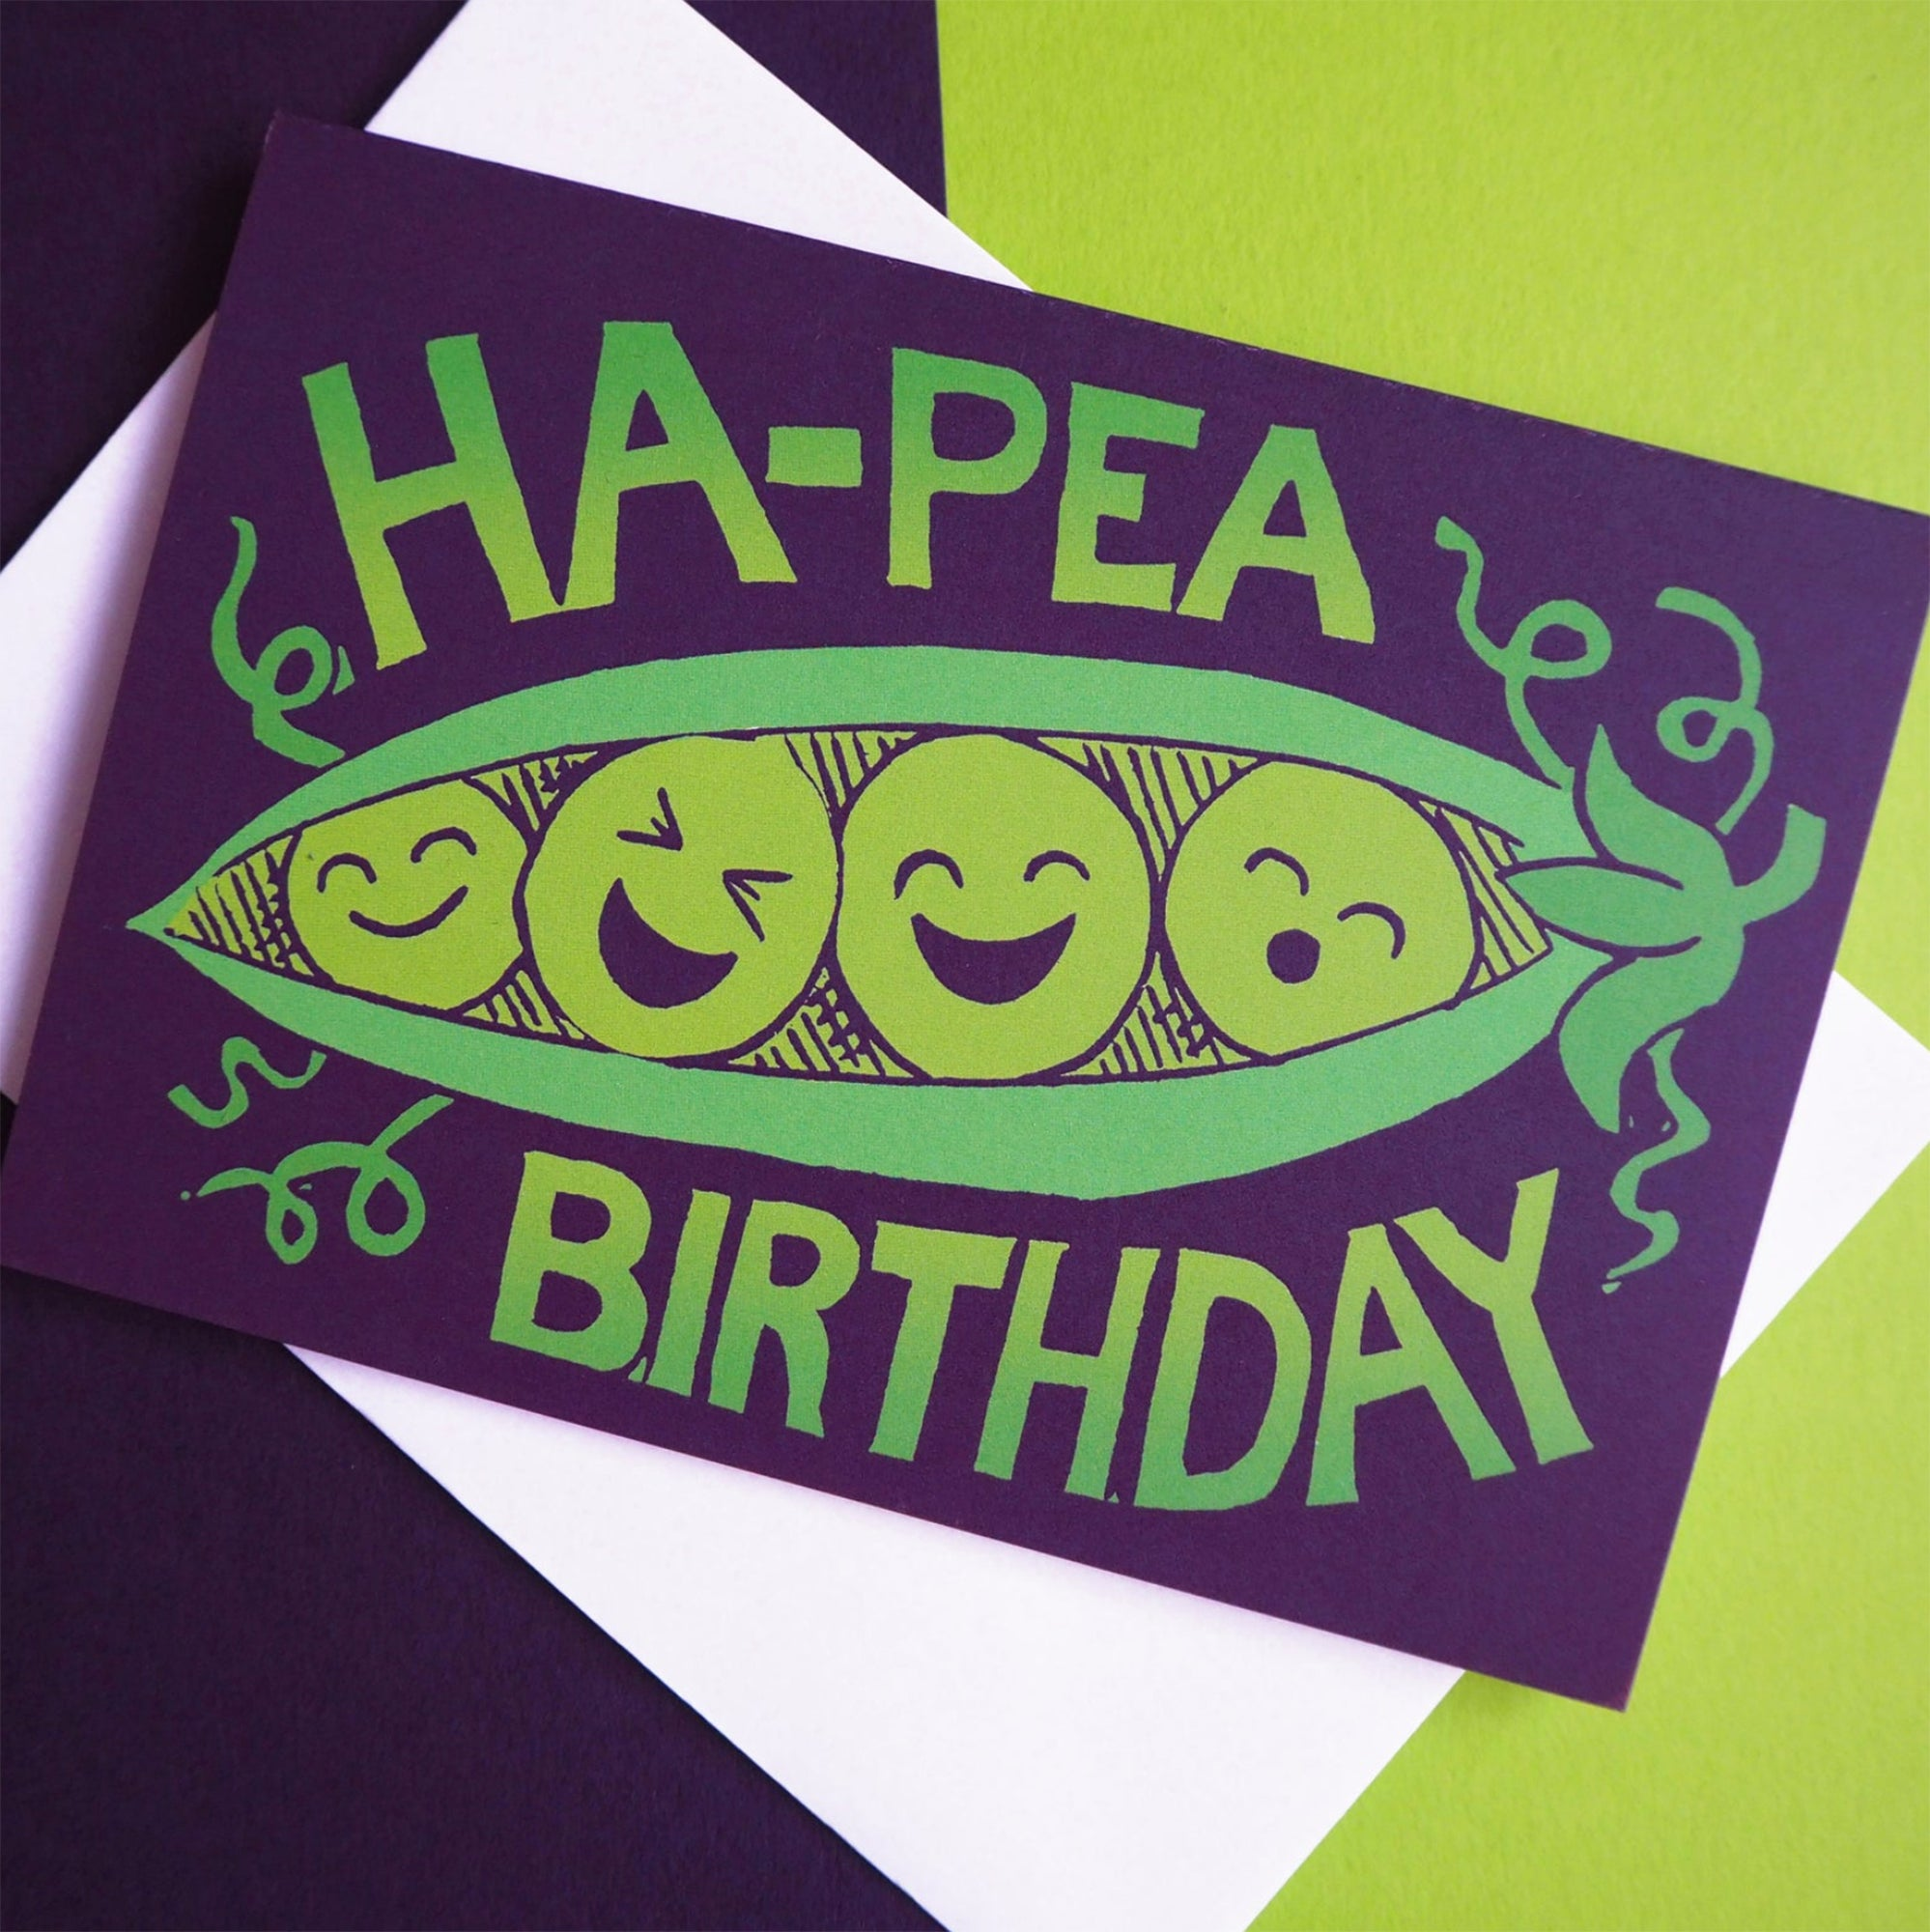 Ha-Pea Happy Birthday greetings card - Inspired